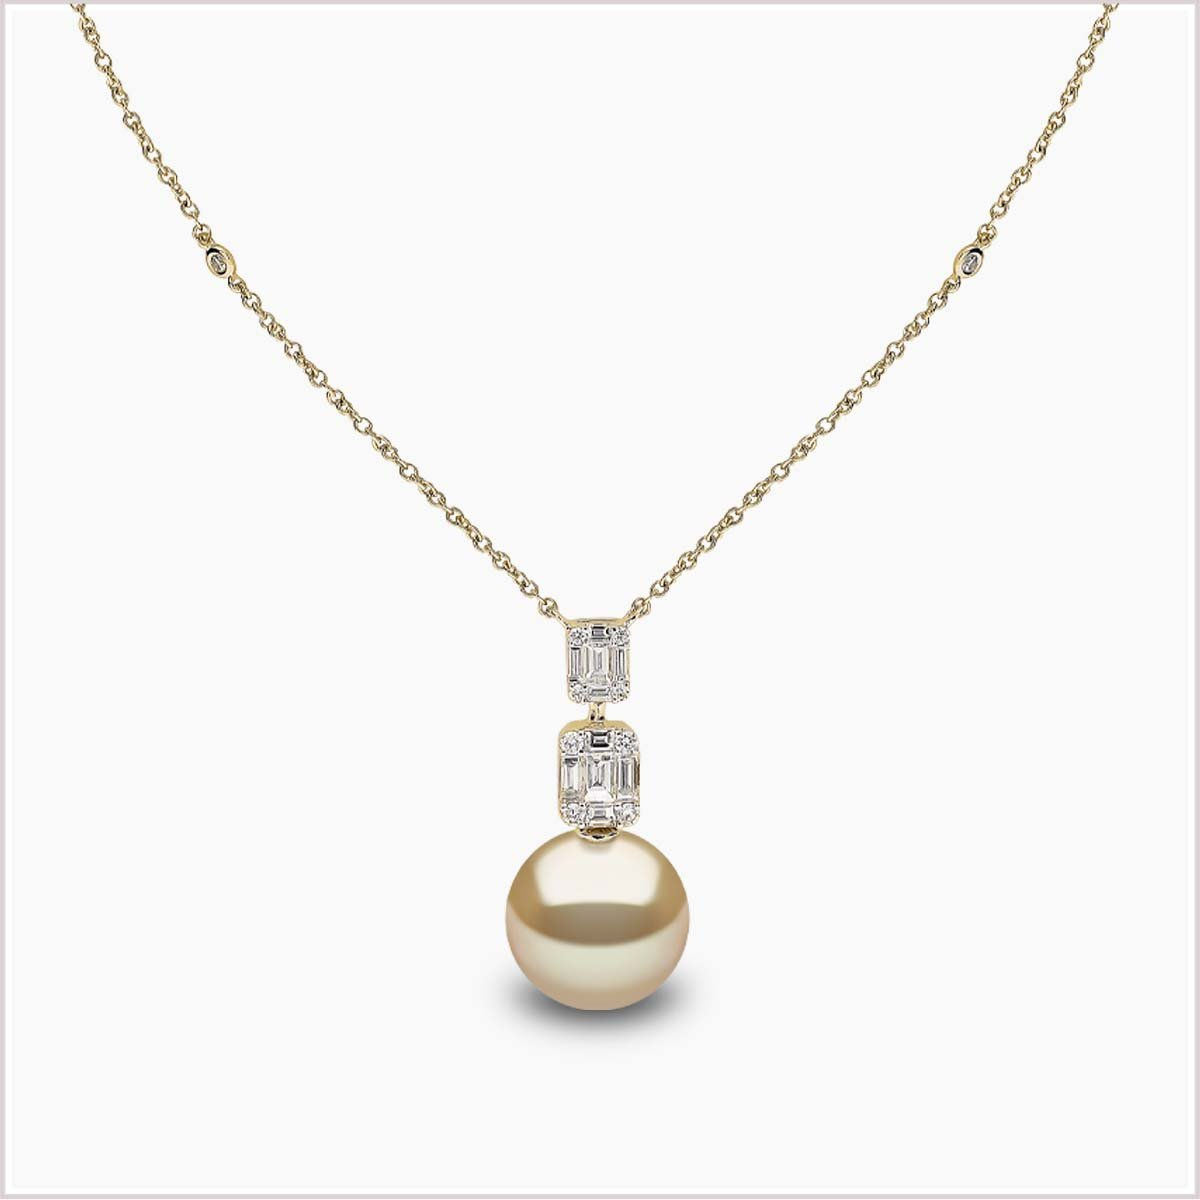 Yoko London Starlight Diamond and Golden Golden South Sea Pearl Necklace